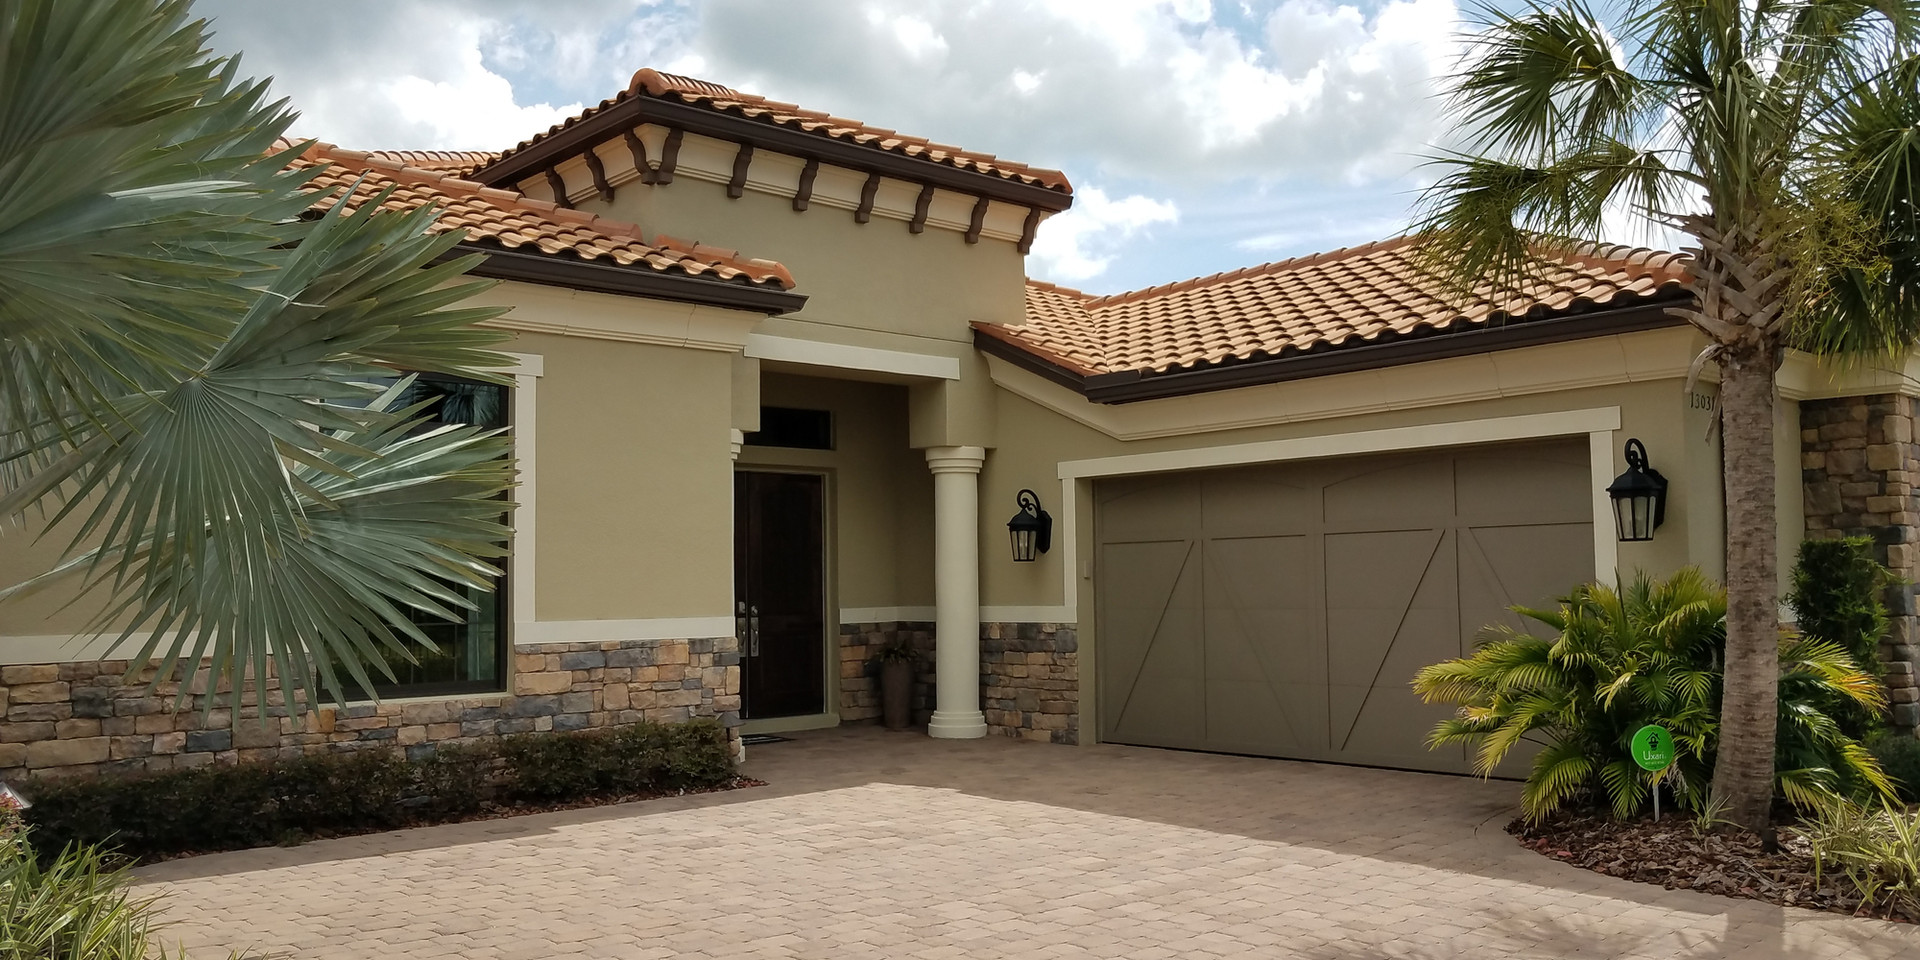 Esplanade Lakewood Ranch model home